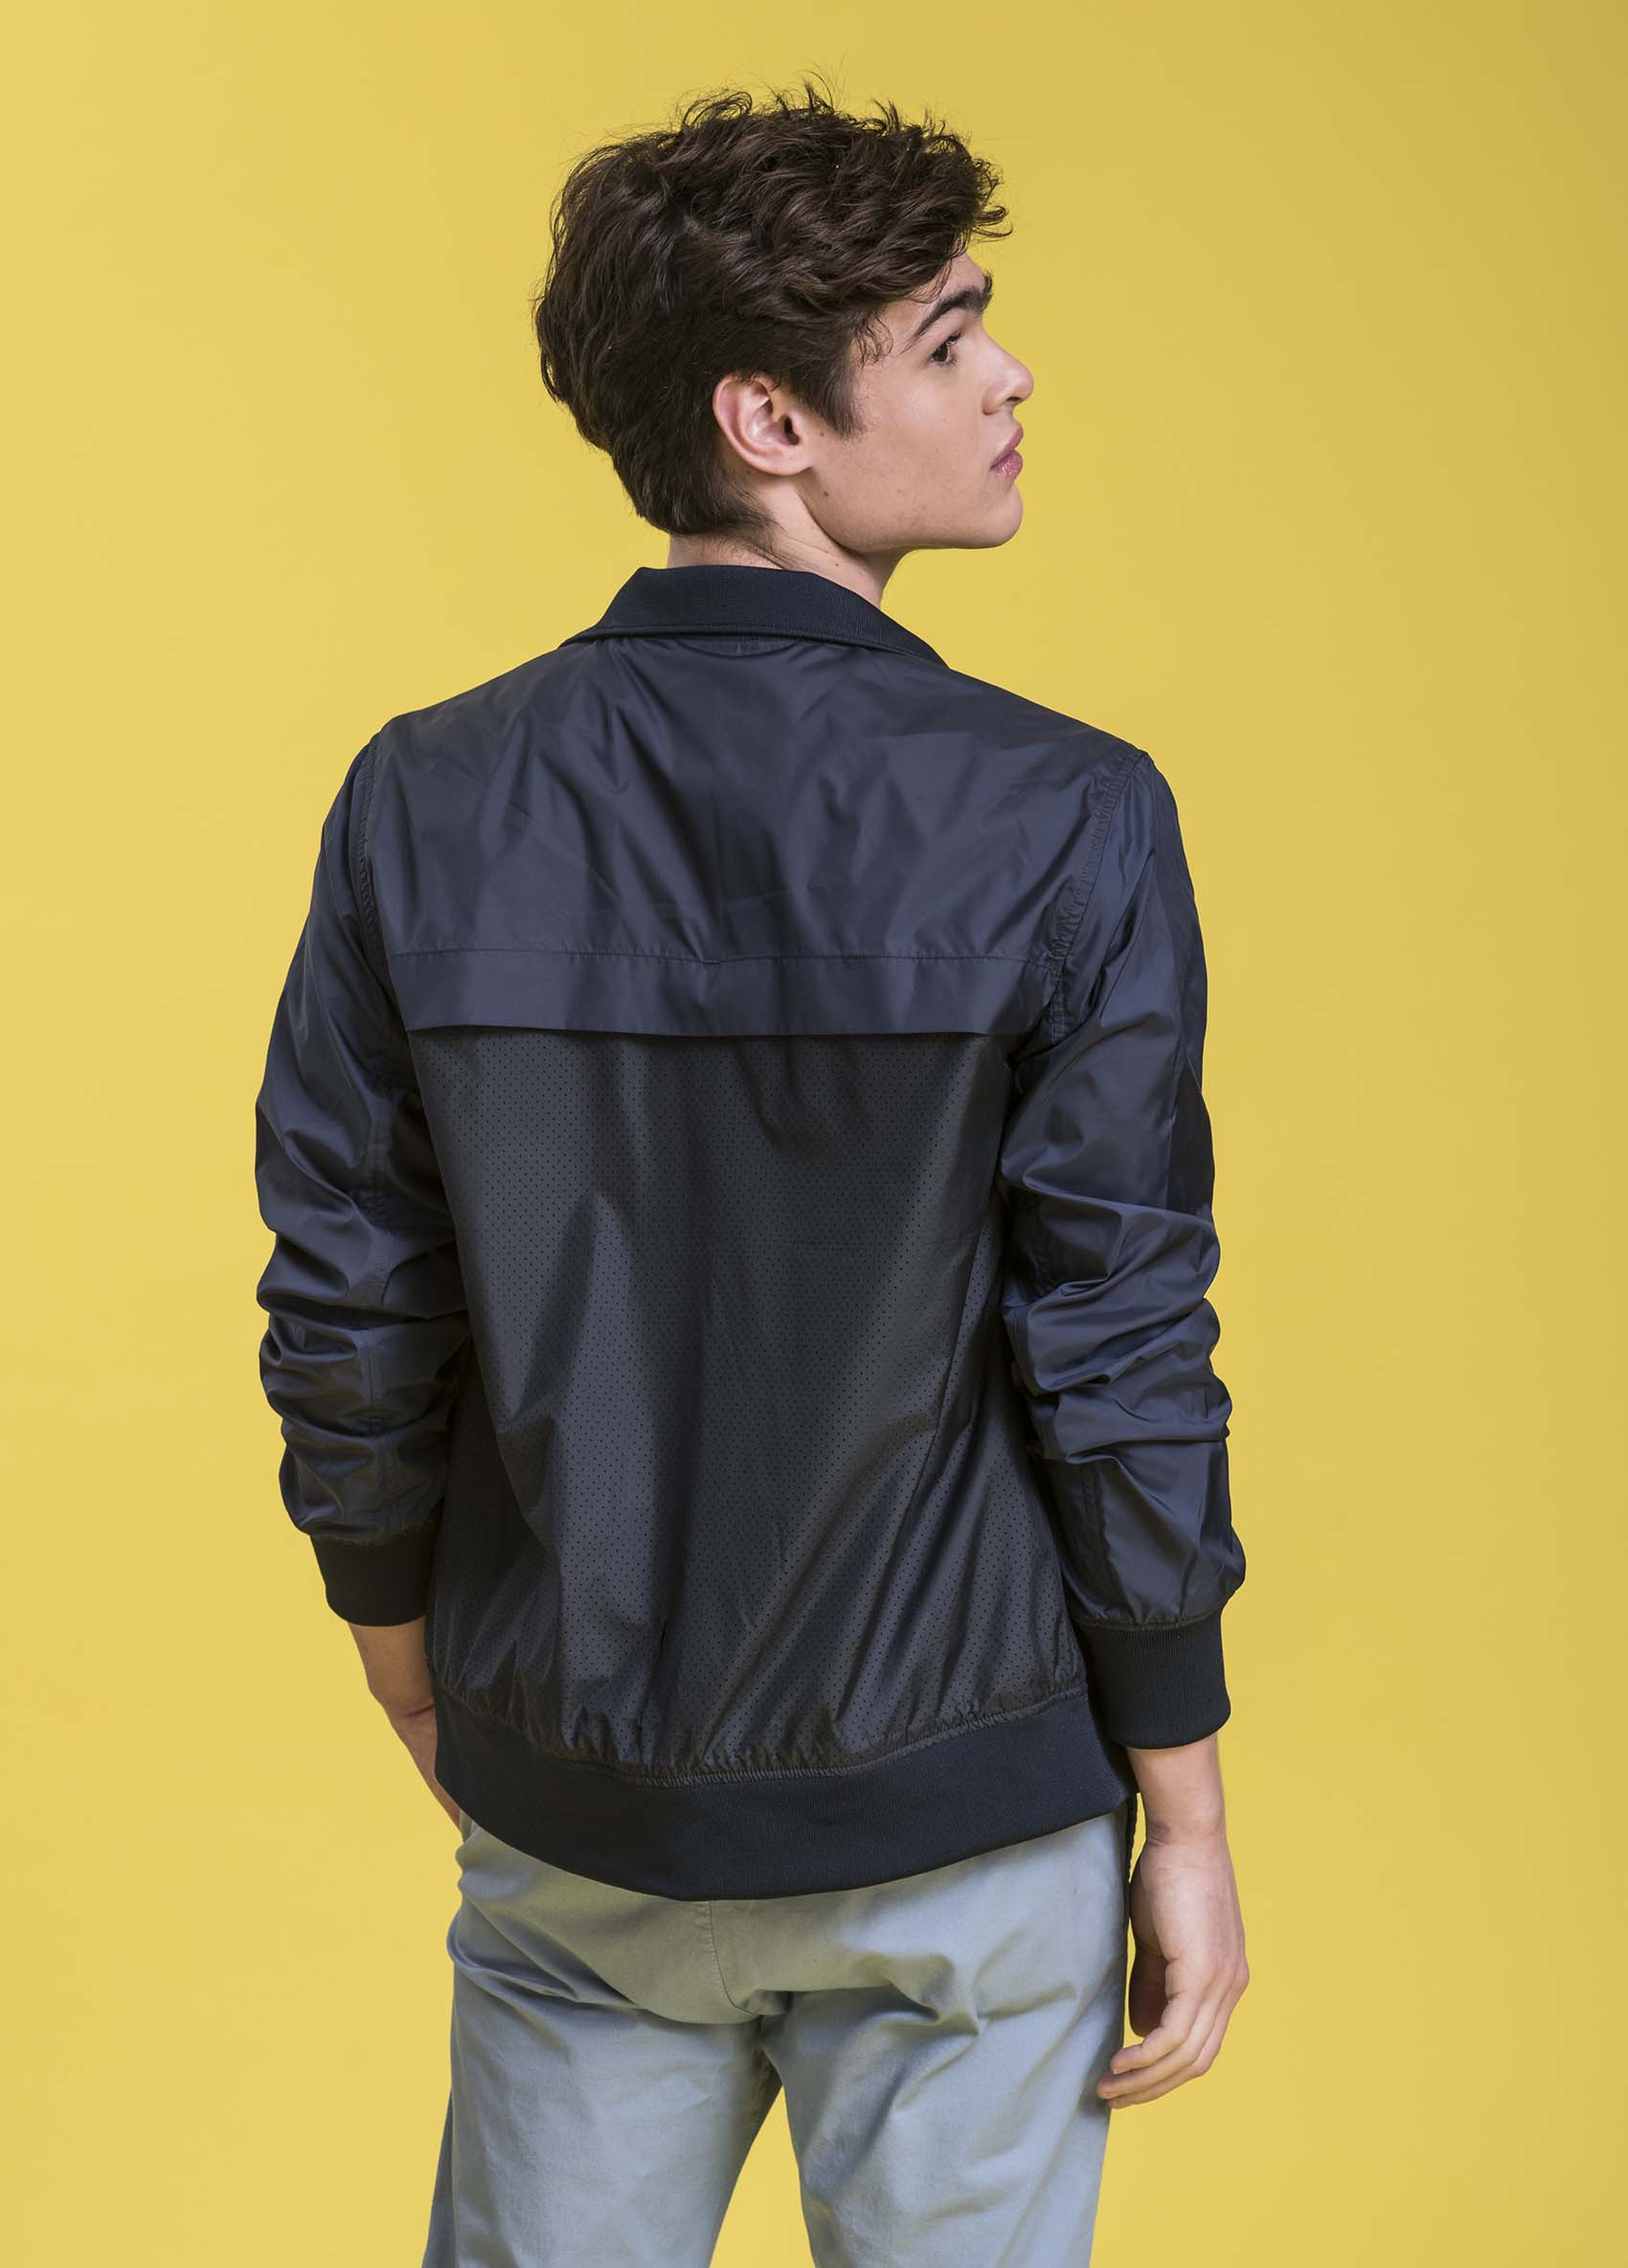 penguin_windbreaker-with-perf-piecing-and-logo-tape_03-16-2020__picture-11843